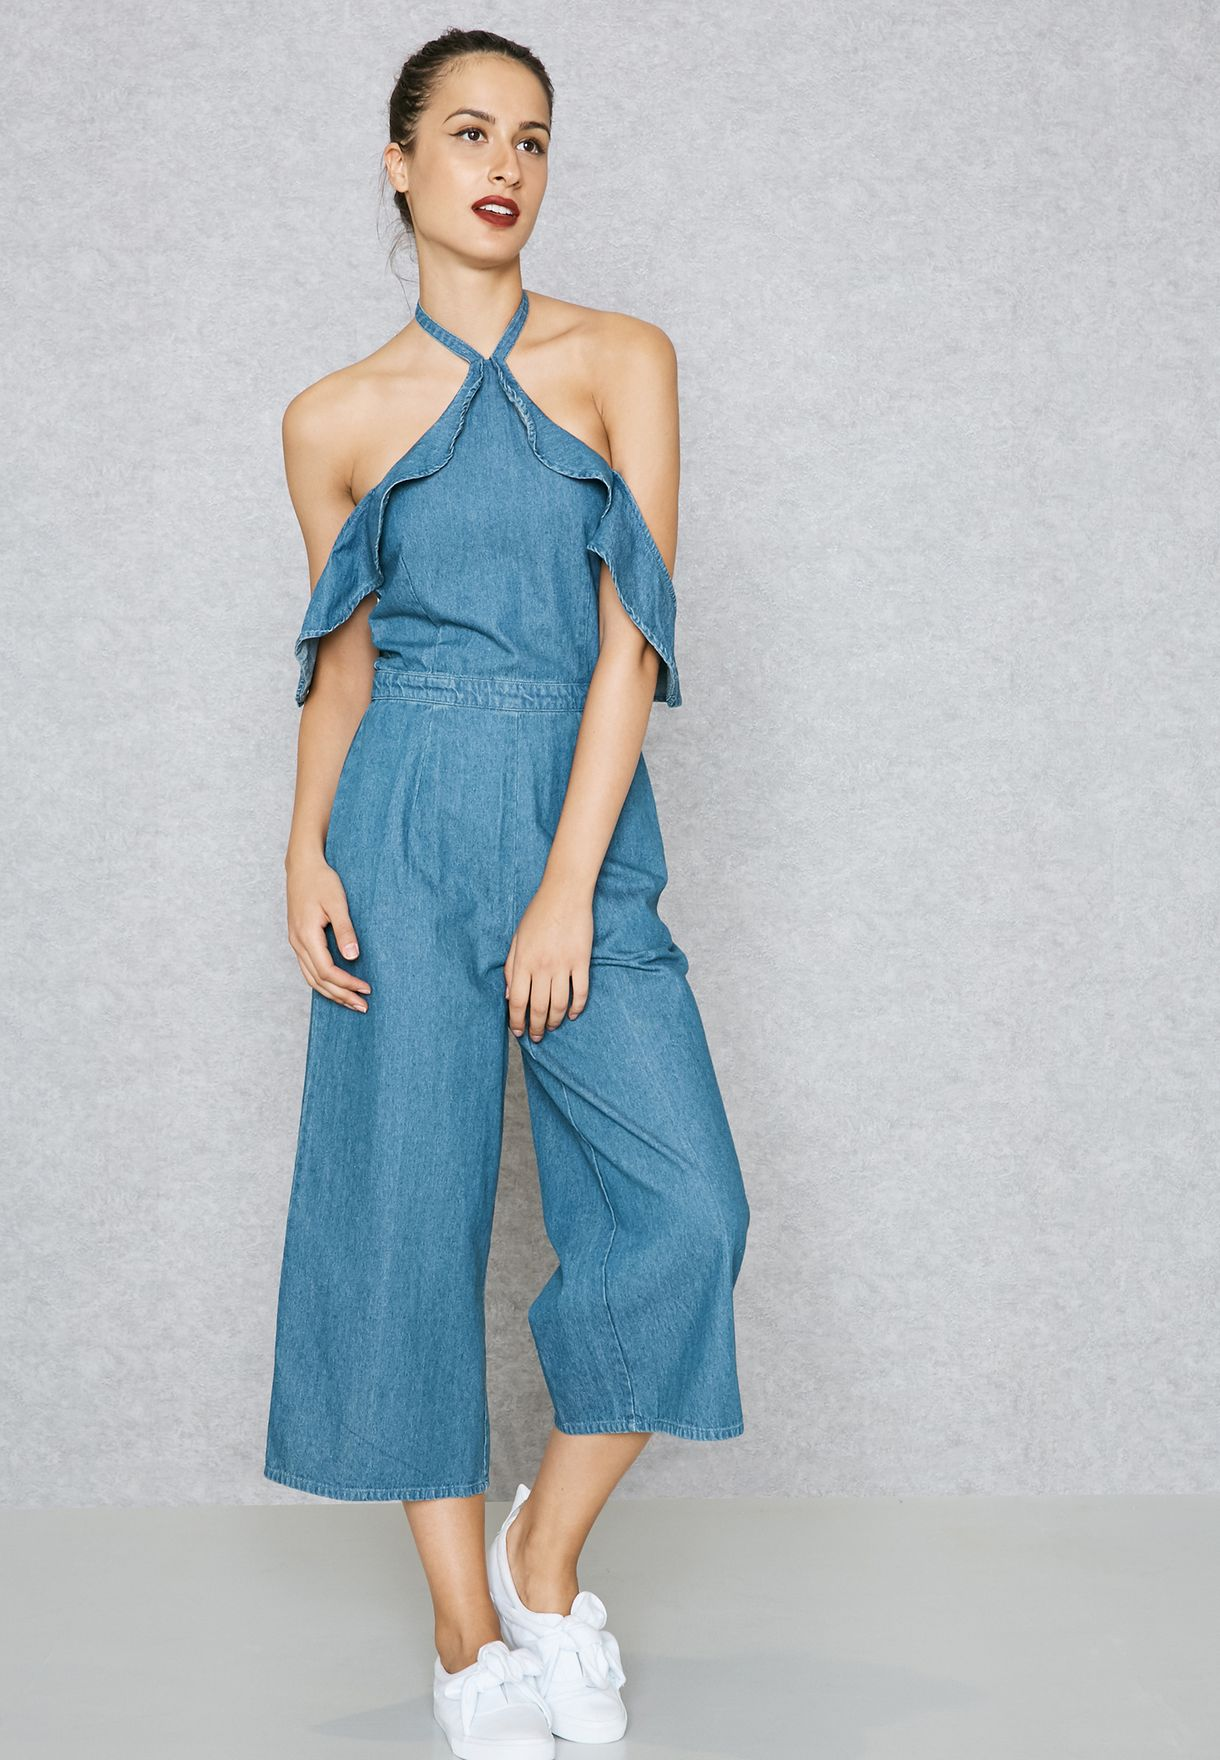 8382e625510b Shop Lost Ink blue Ruffled Detail Halter Neck Jumpsuit ...